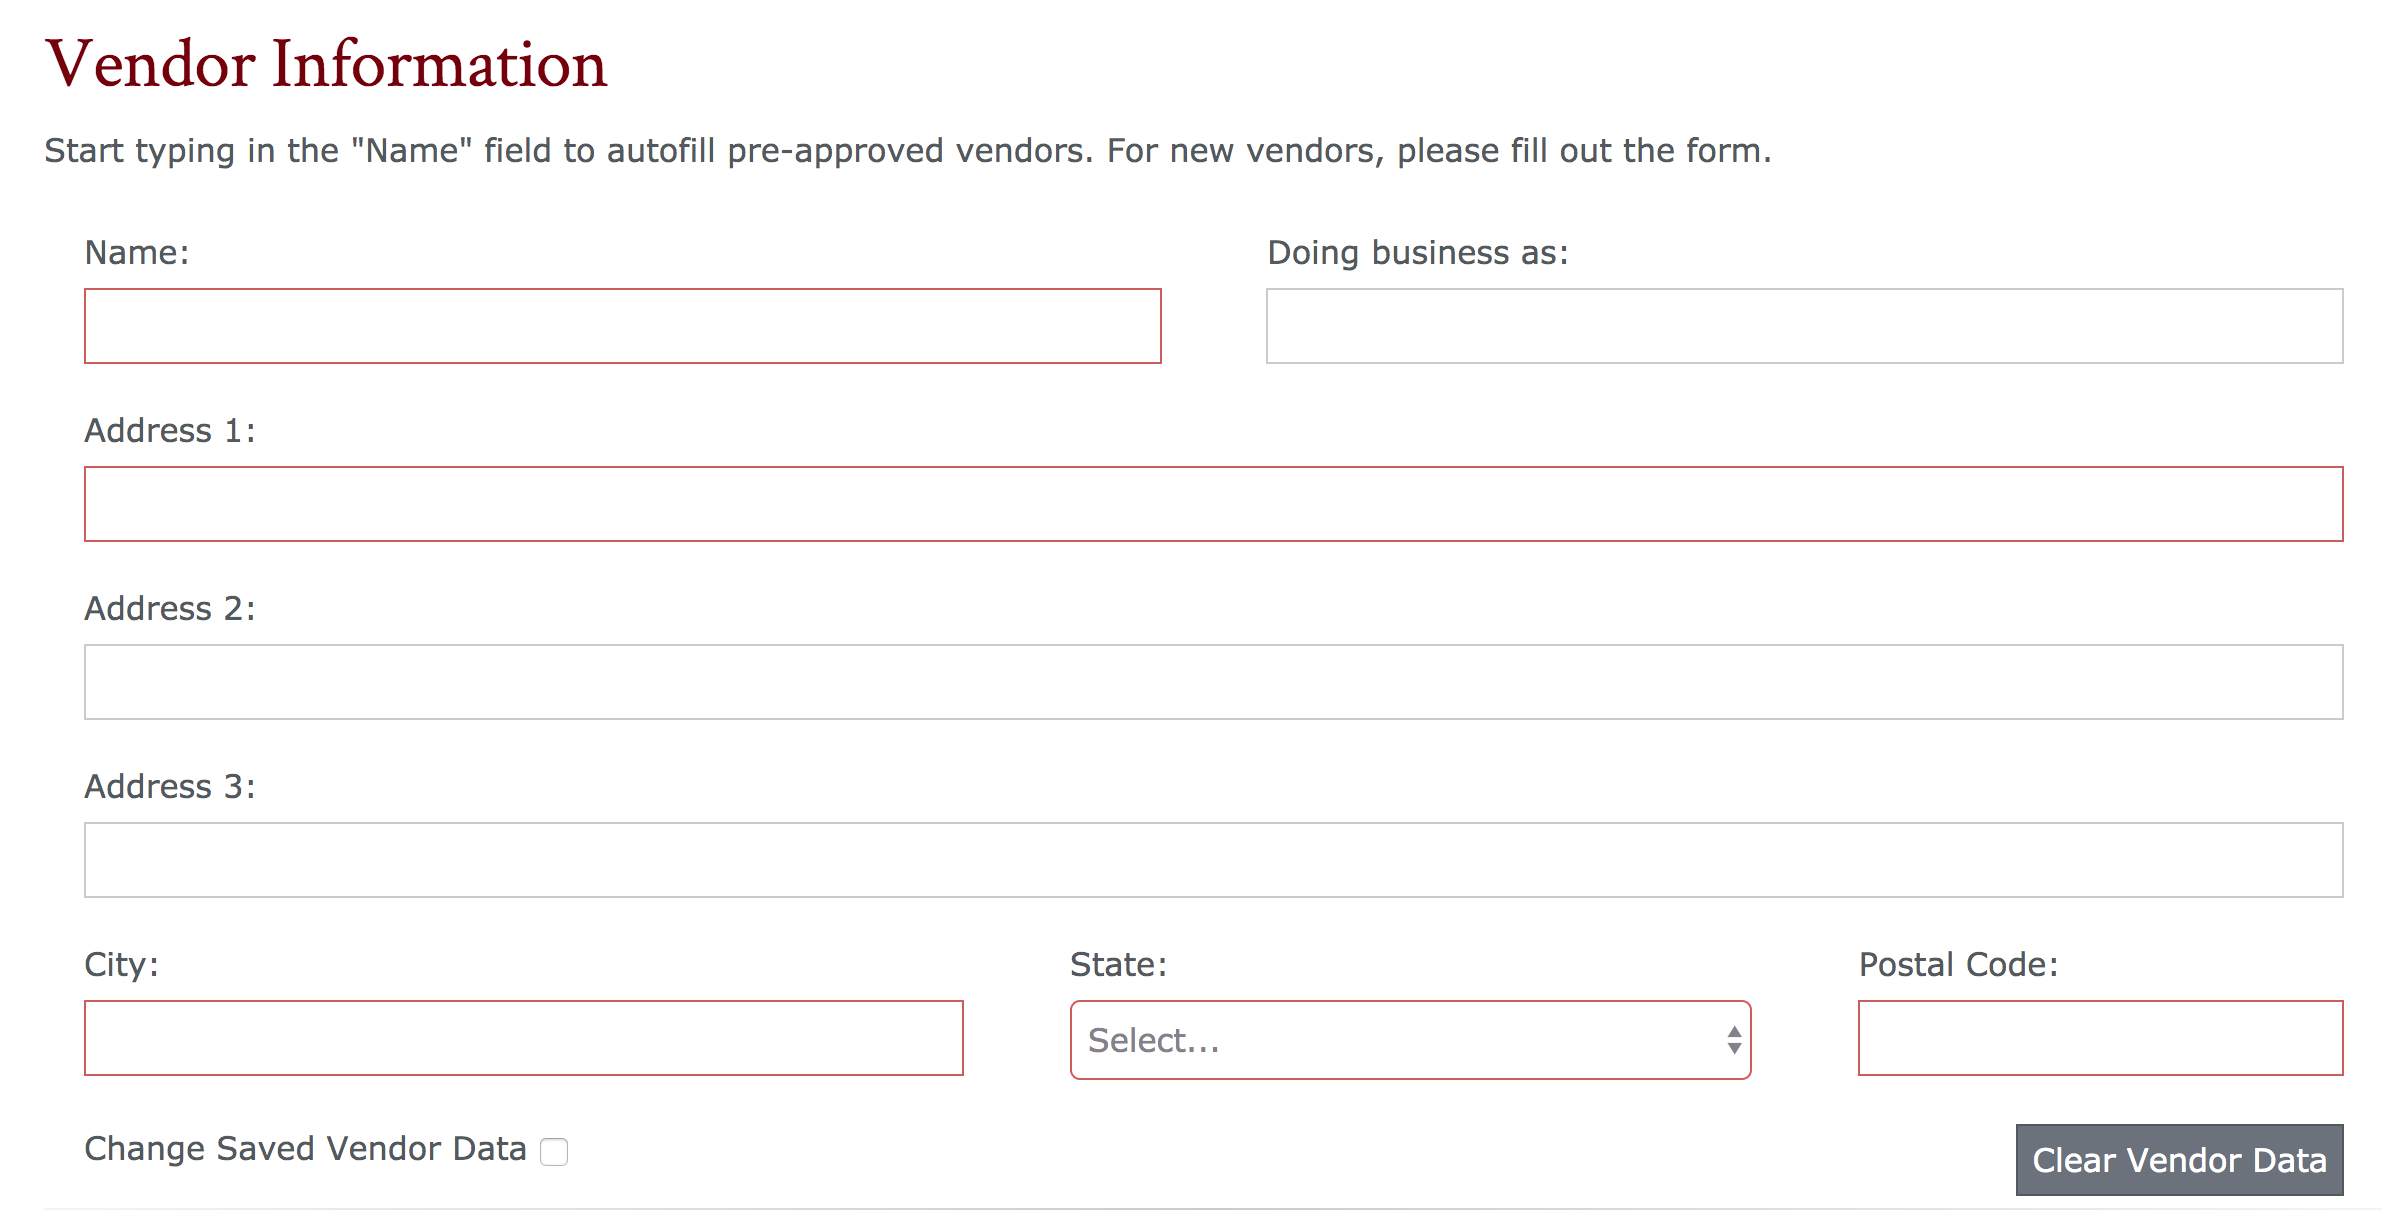 vendor information section of the purchase request form